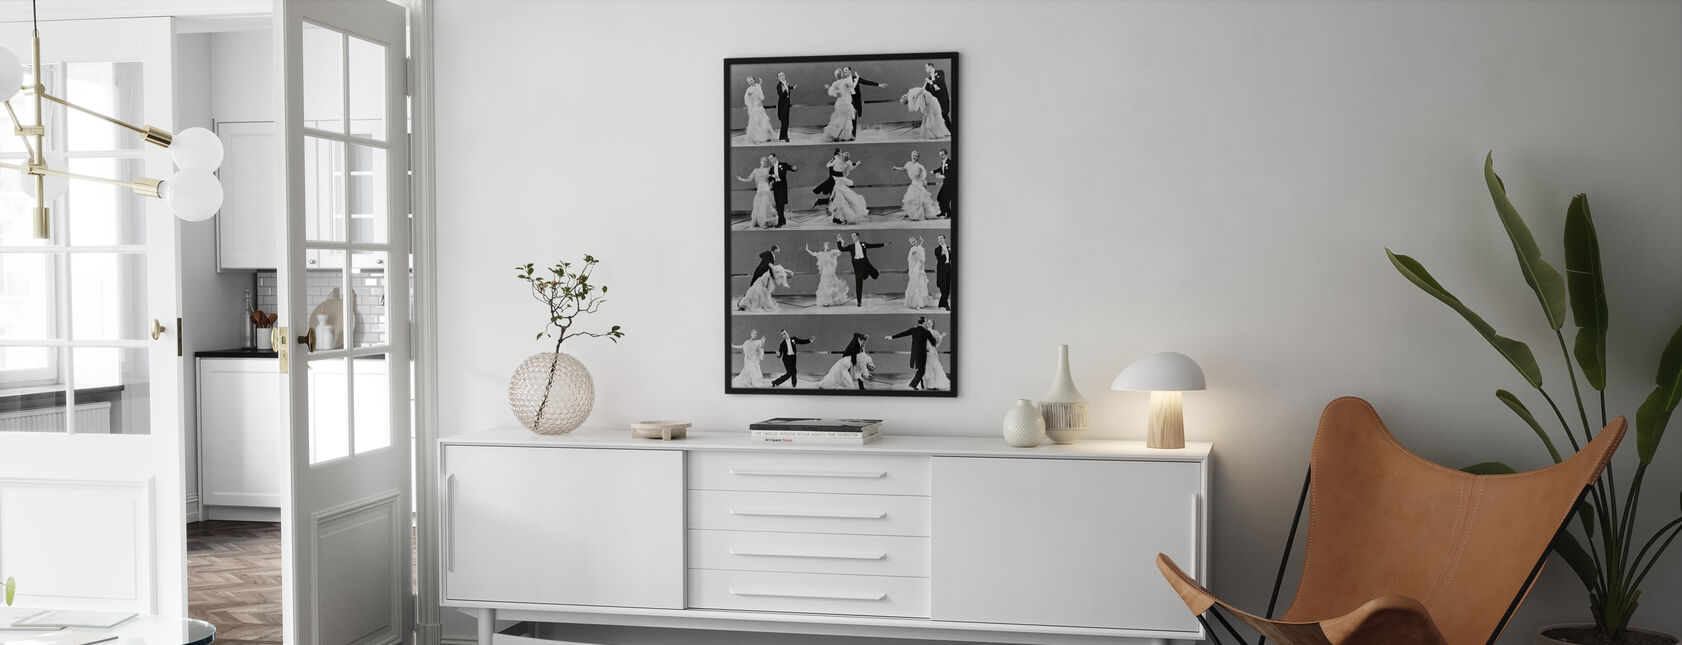 Top Hat - Ginger Rogers and Fred Astaire - Framed print - Living Room